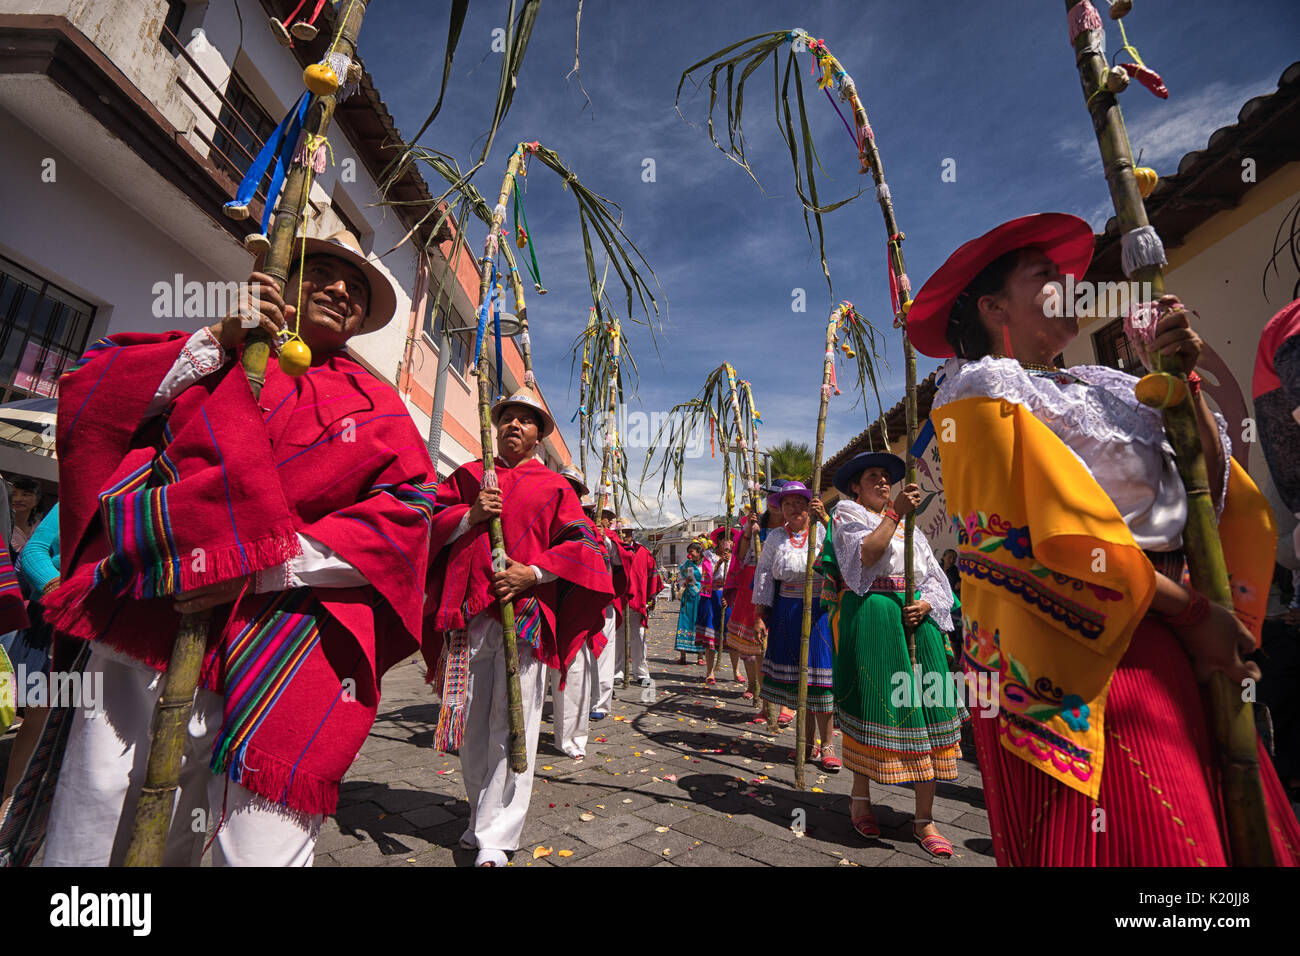 June 17, 2017 Pujili, Ecuador: at Corpus Christi beside religious rituals traditional Andean harvest and sun festivities are taking place - Stock Image